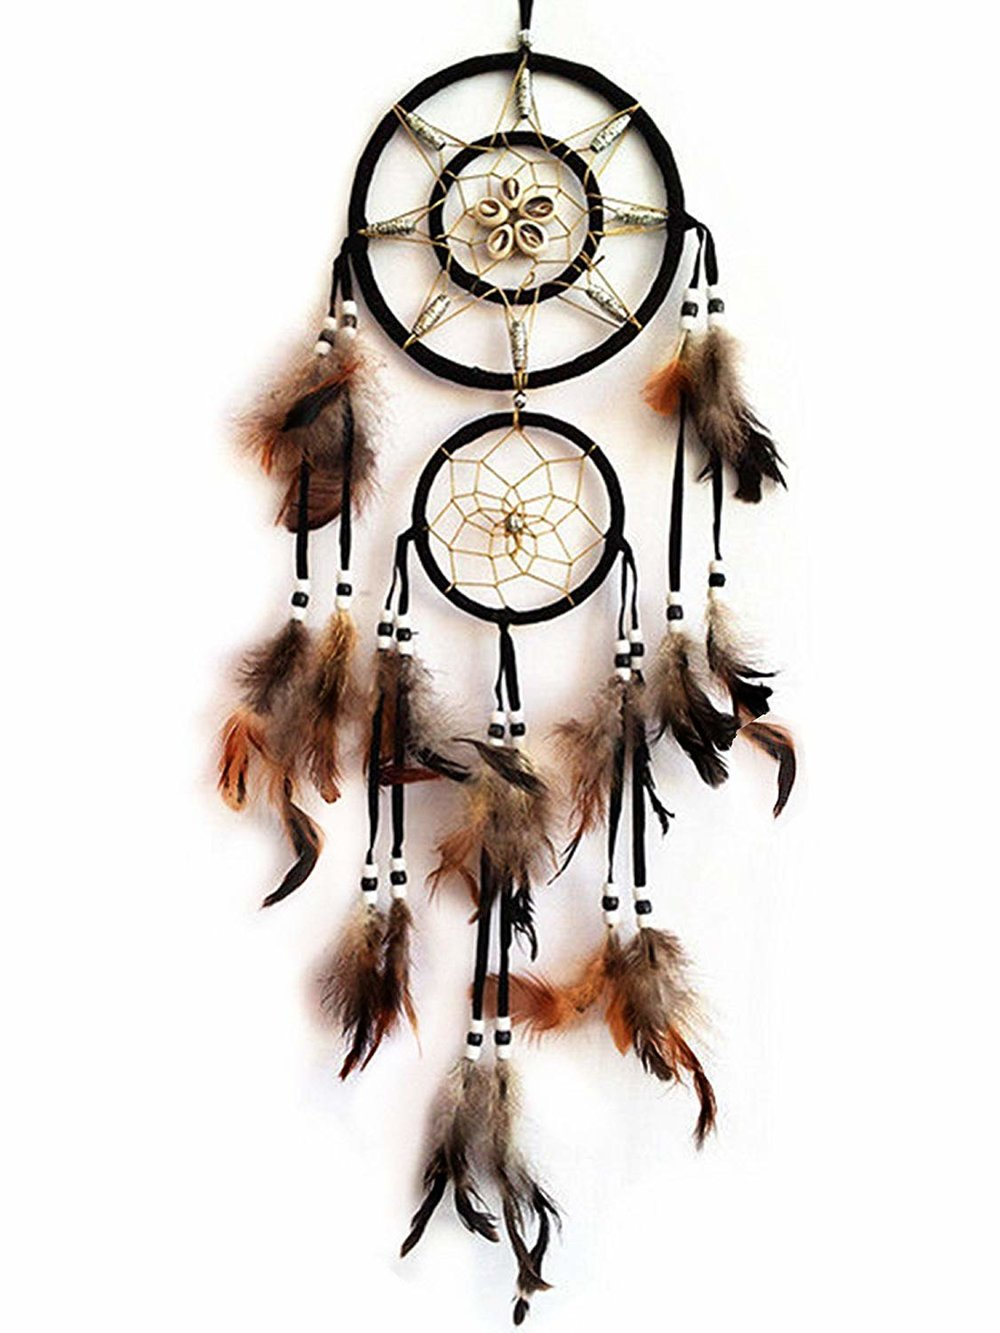 Betterdecor Handmade Dream Catcher with Feathers